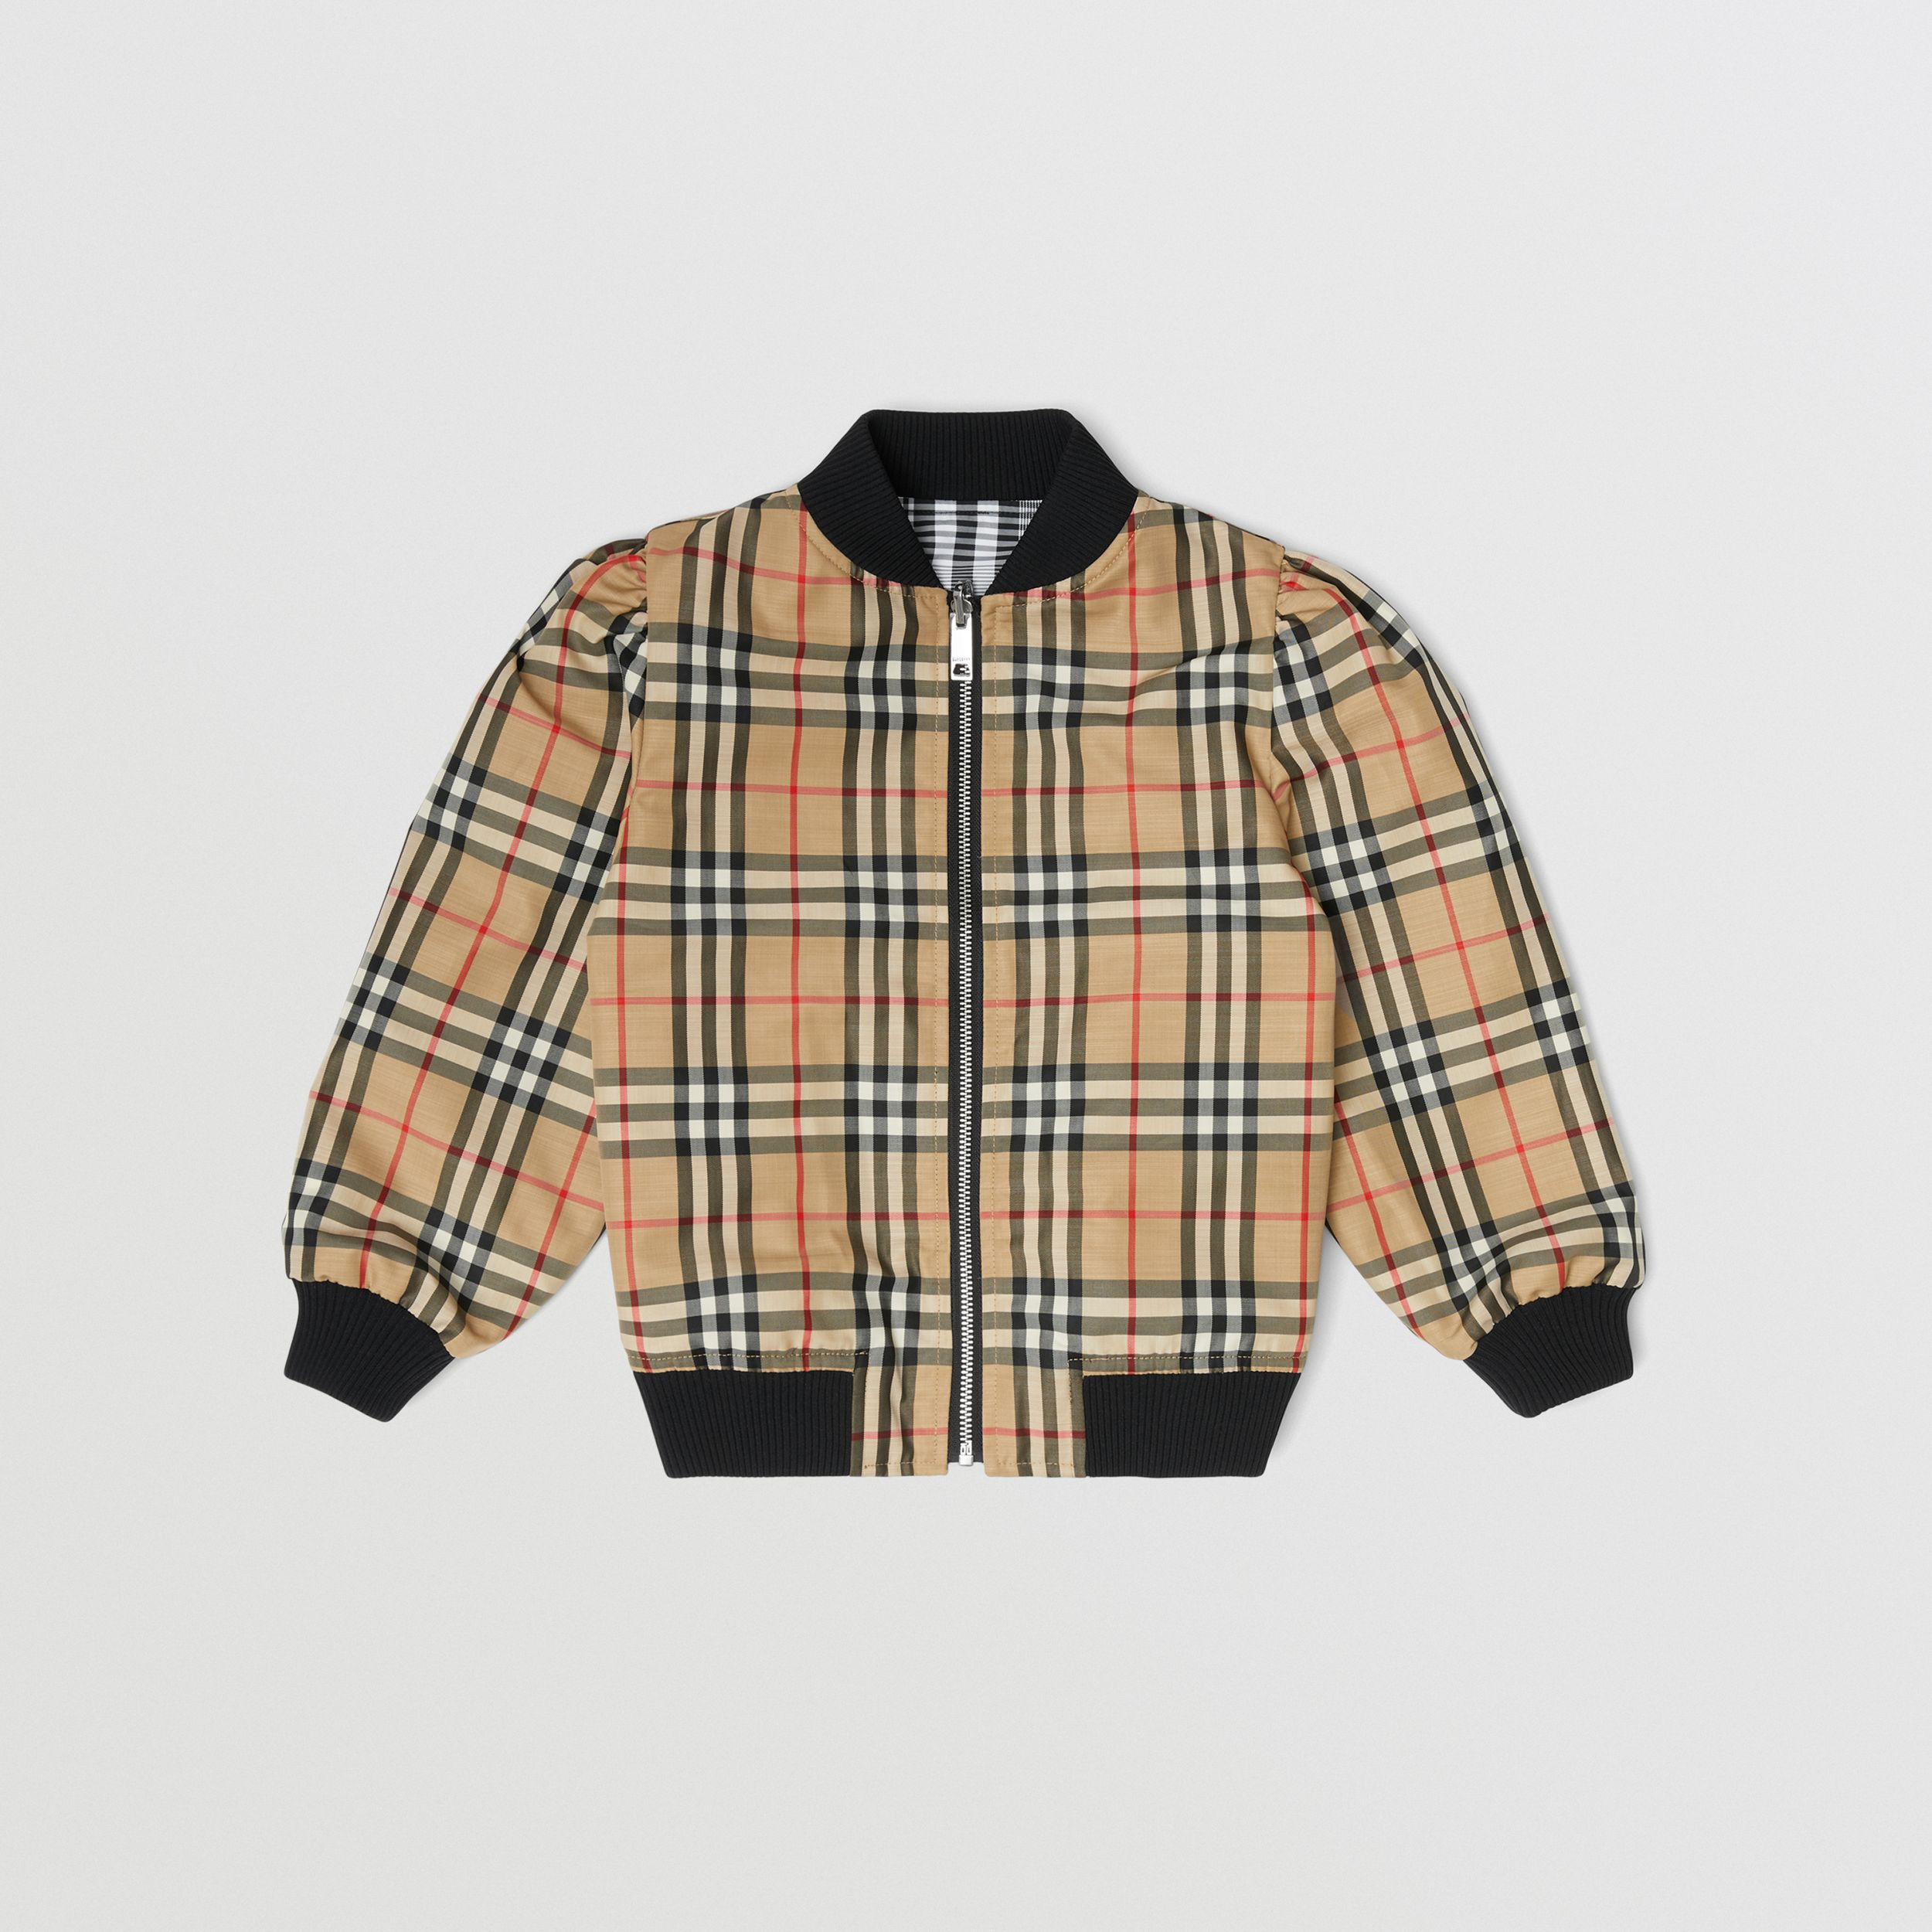 Logo Appliqué Reversible Check Bomber Jacket in Black | Burberry - 3